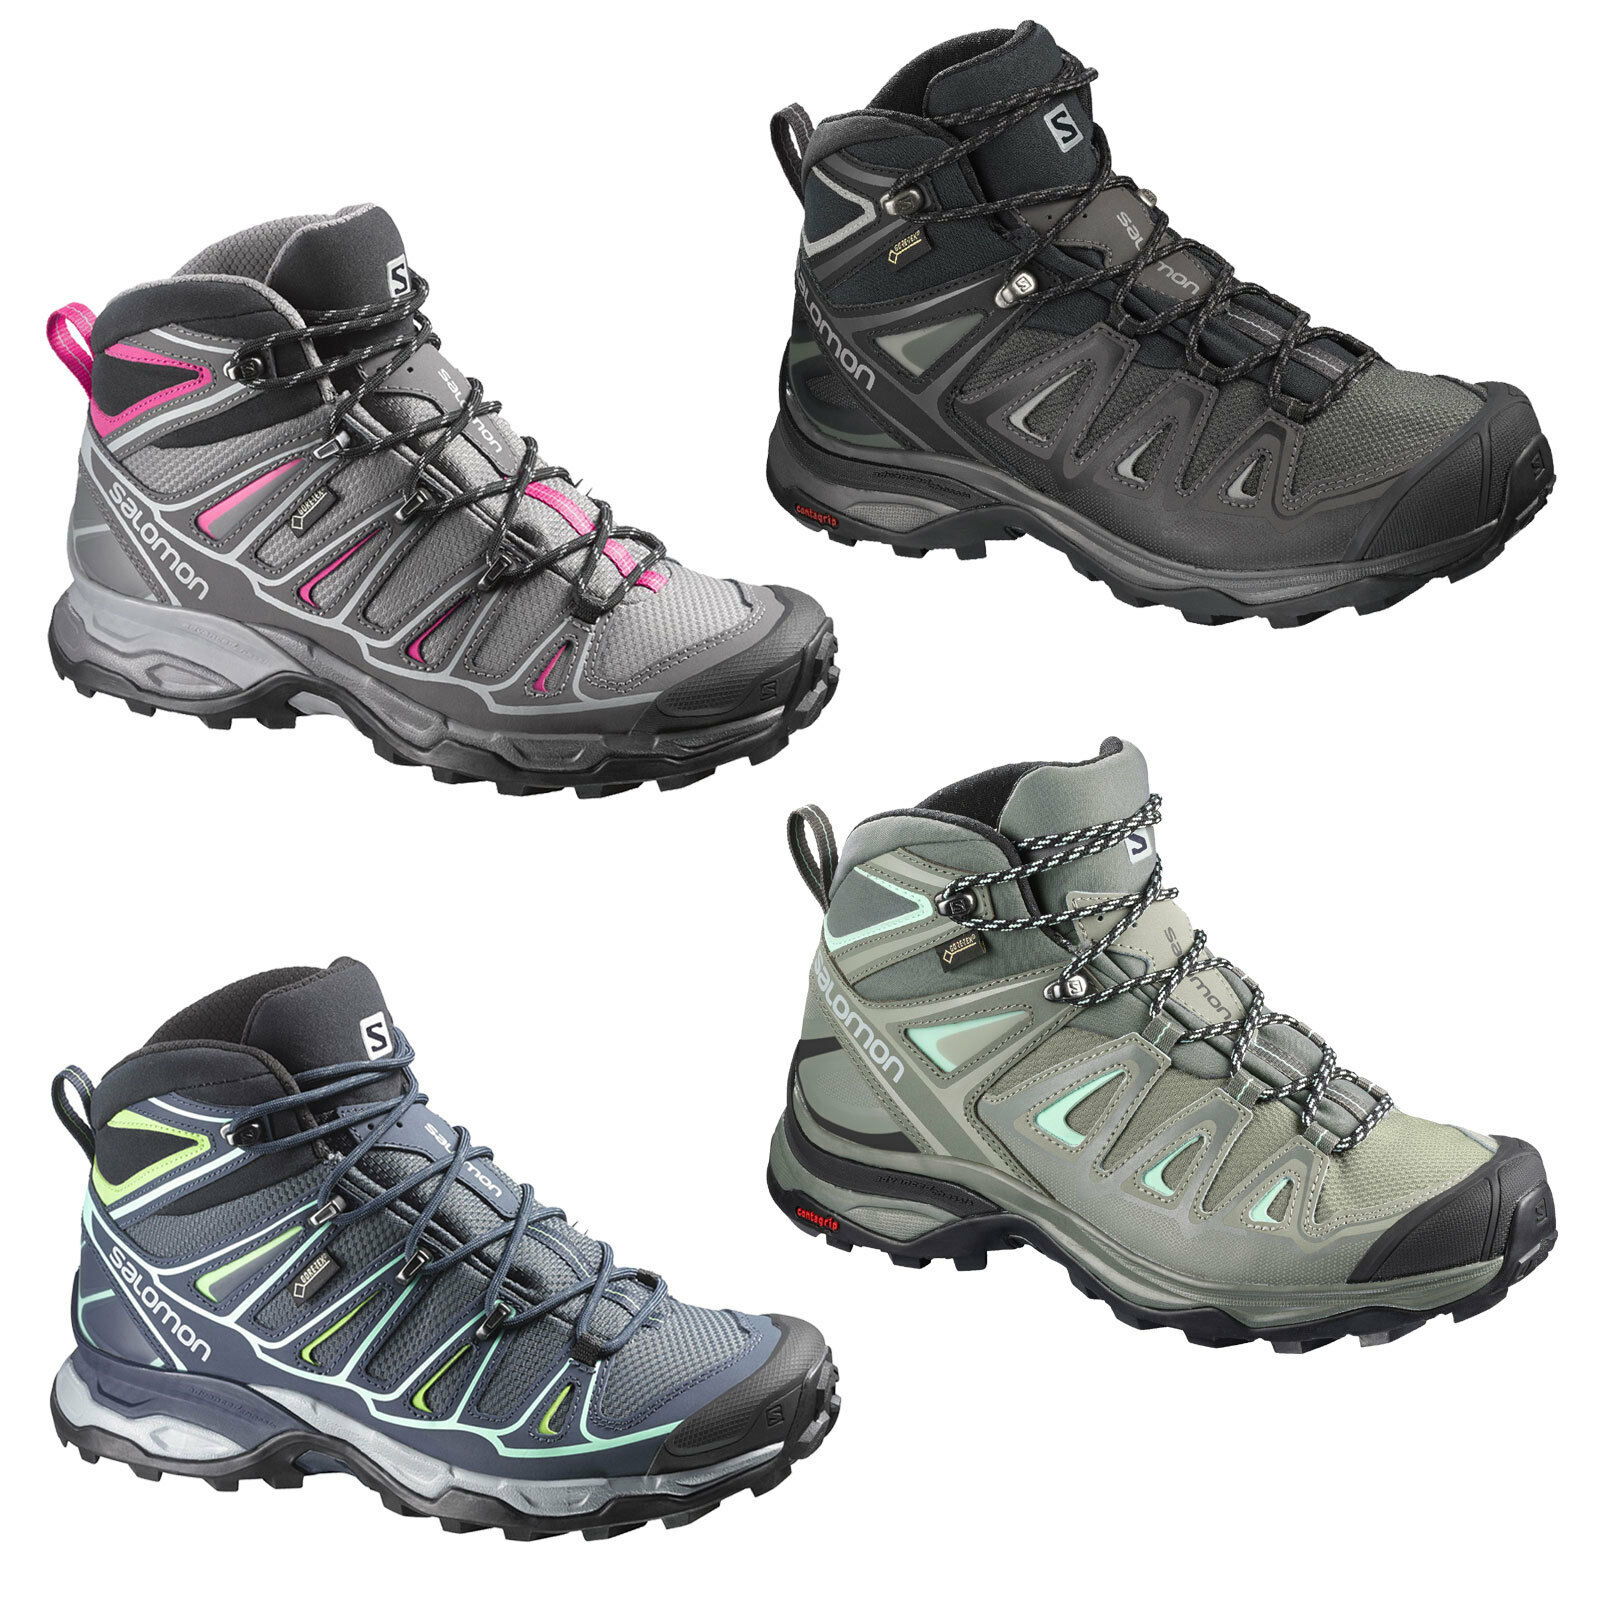 Salomon x Ultra mid GTX Gore-Tex Women's Hiking Boots Trail shoes Trekking shoes